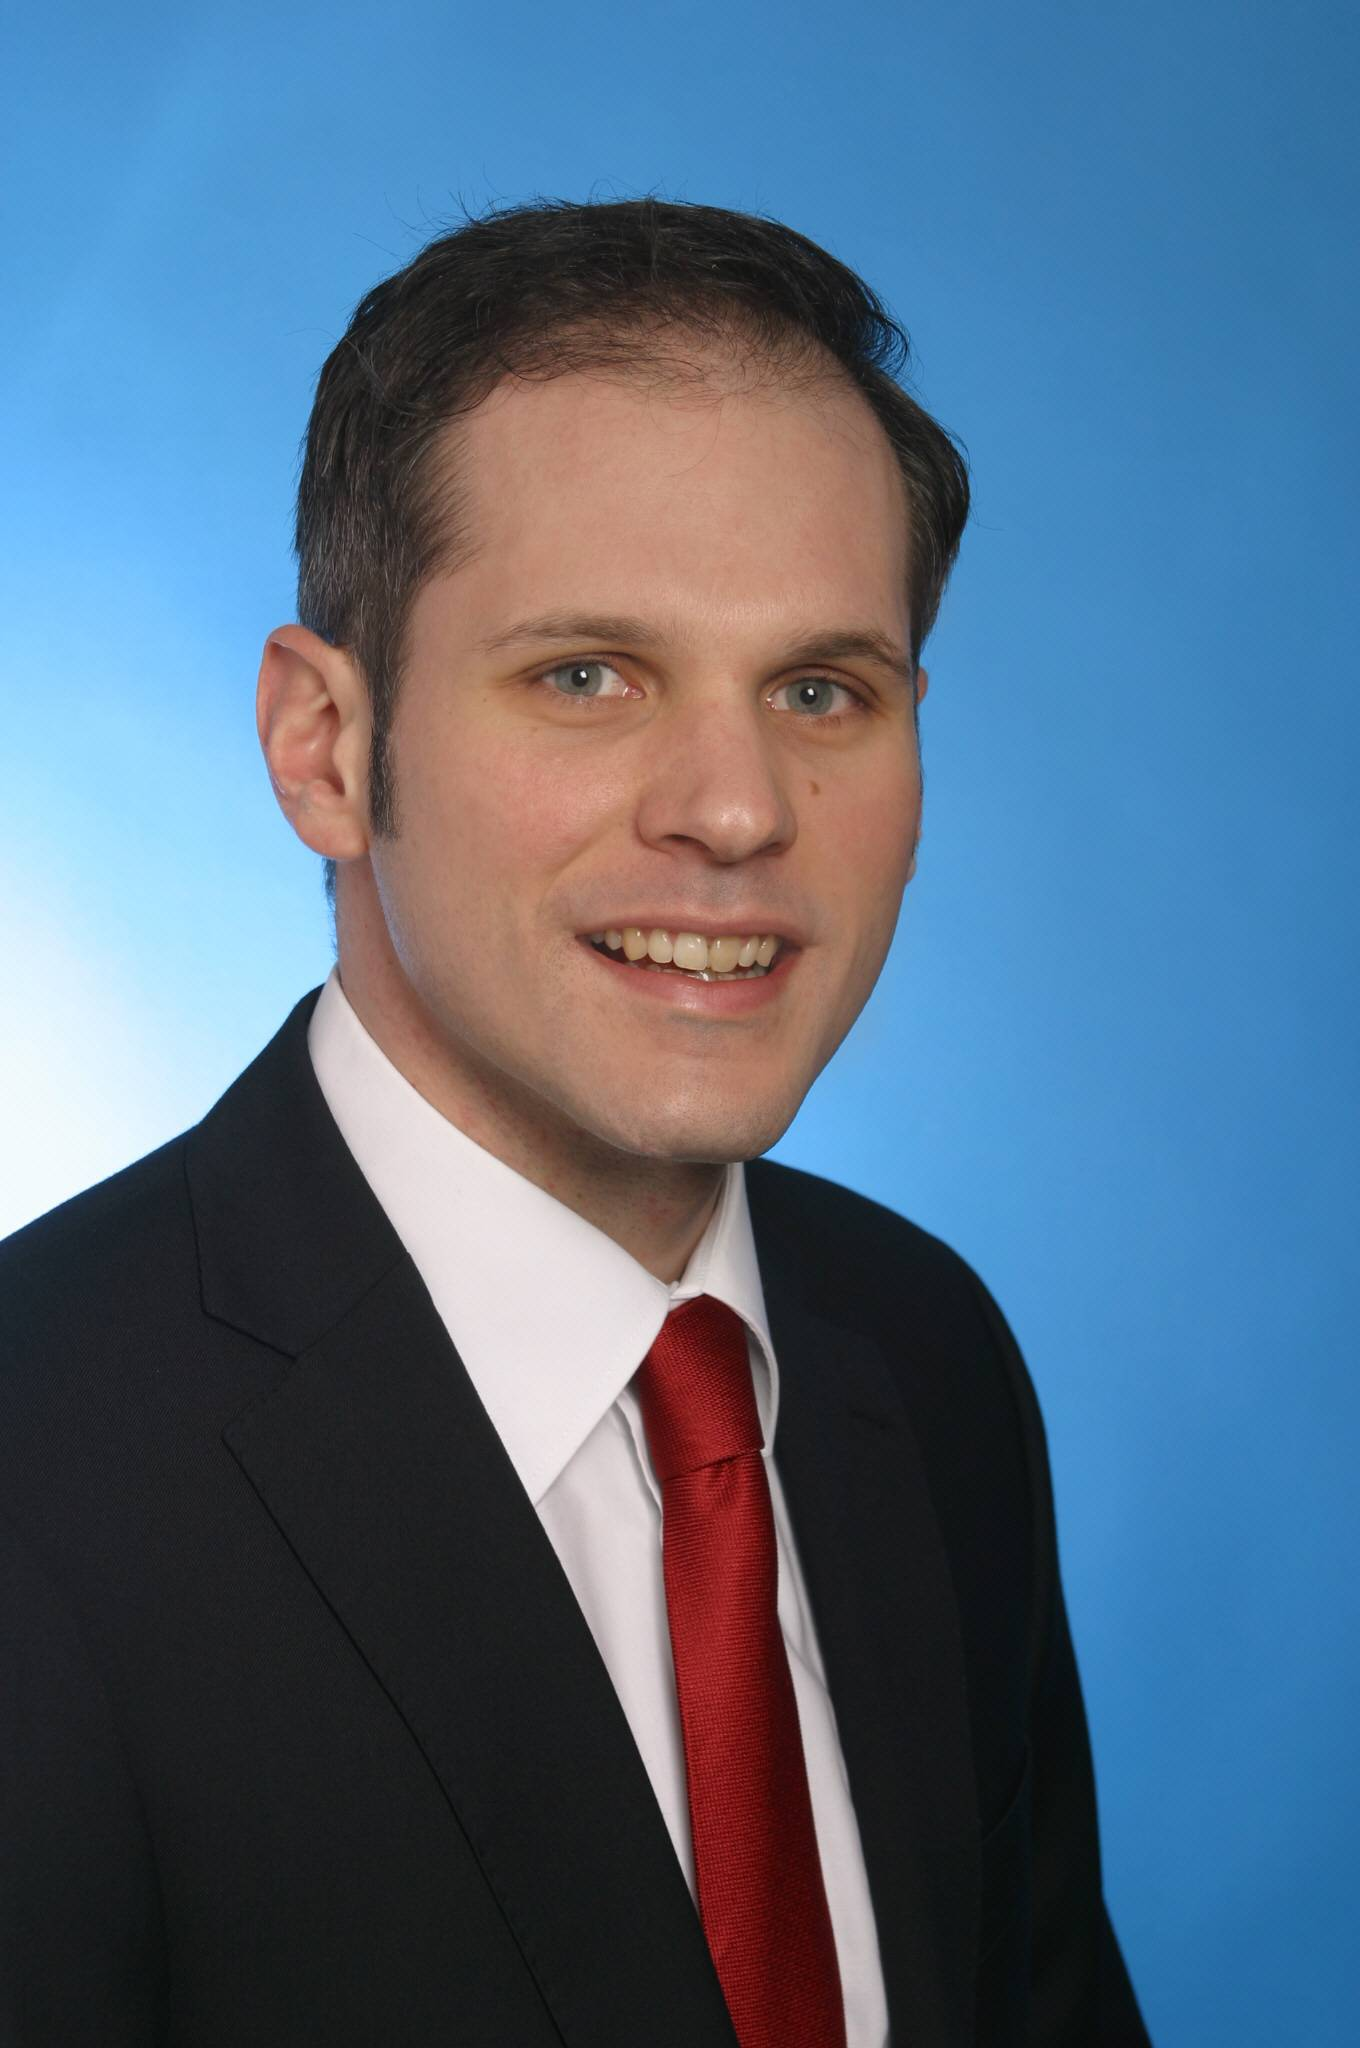 Dr. Felix Roesch - Senior Lecturer in International Relations Coventry University (GB)